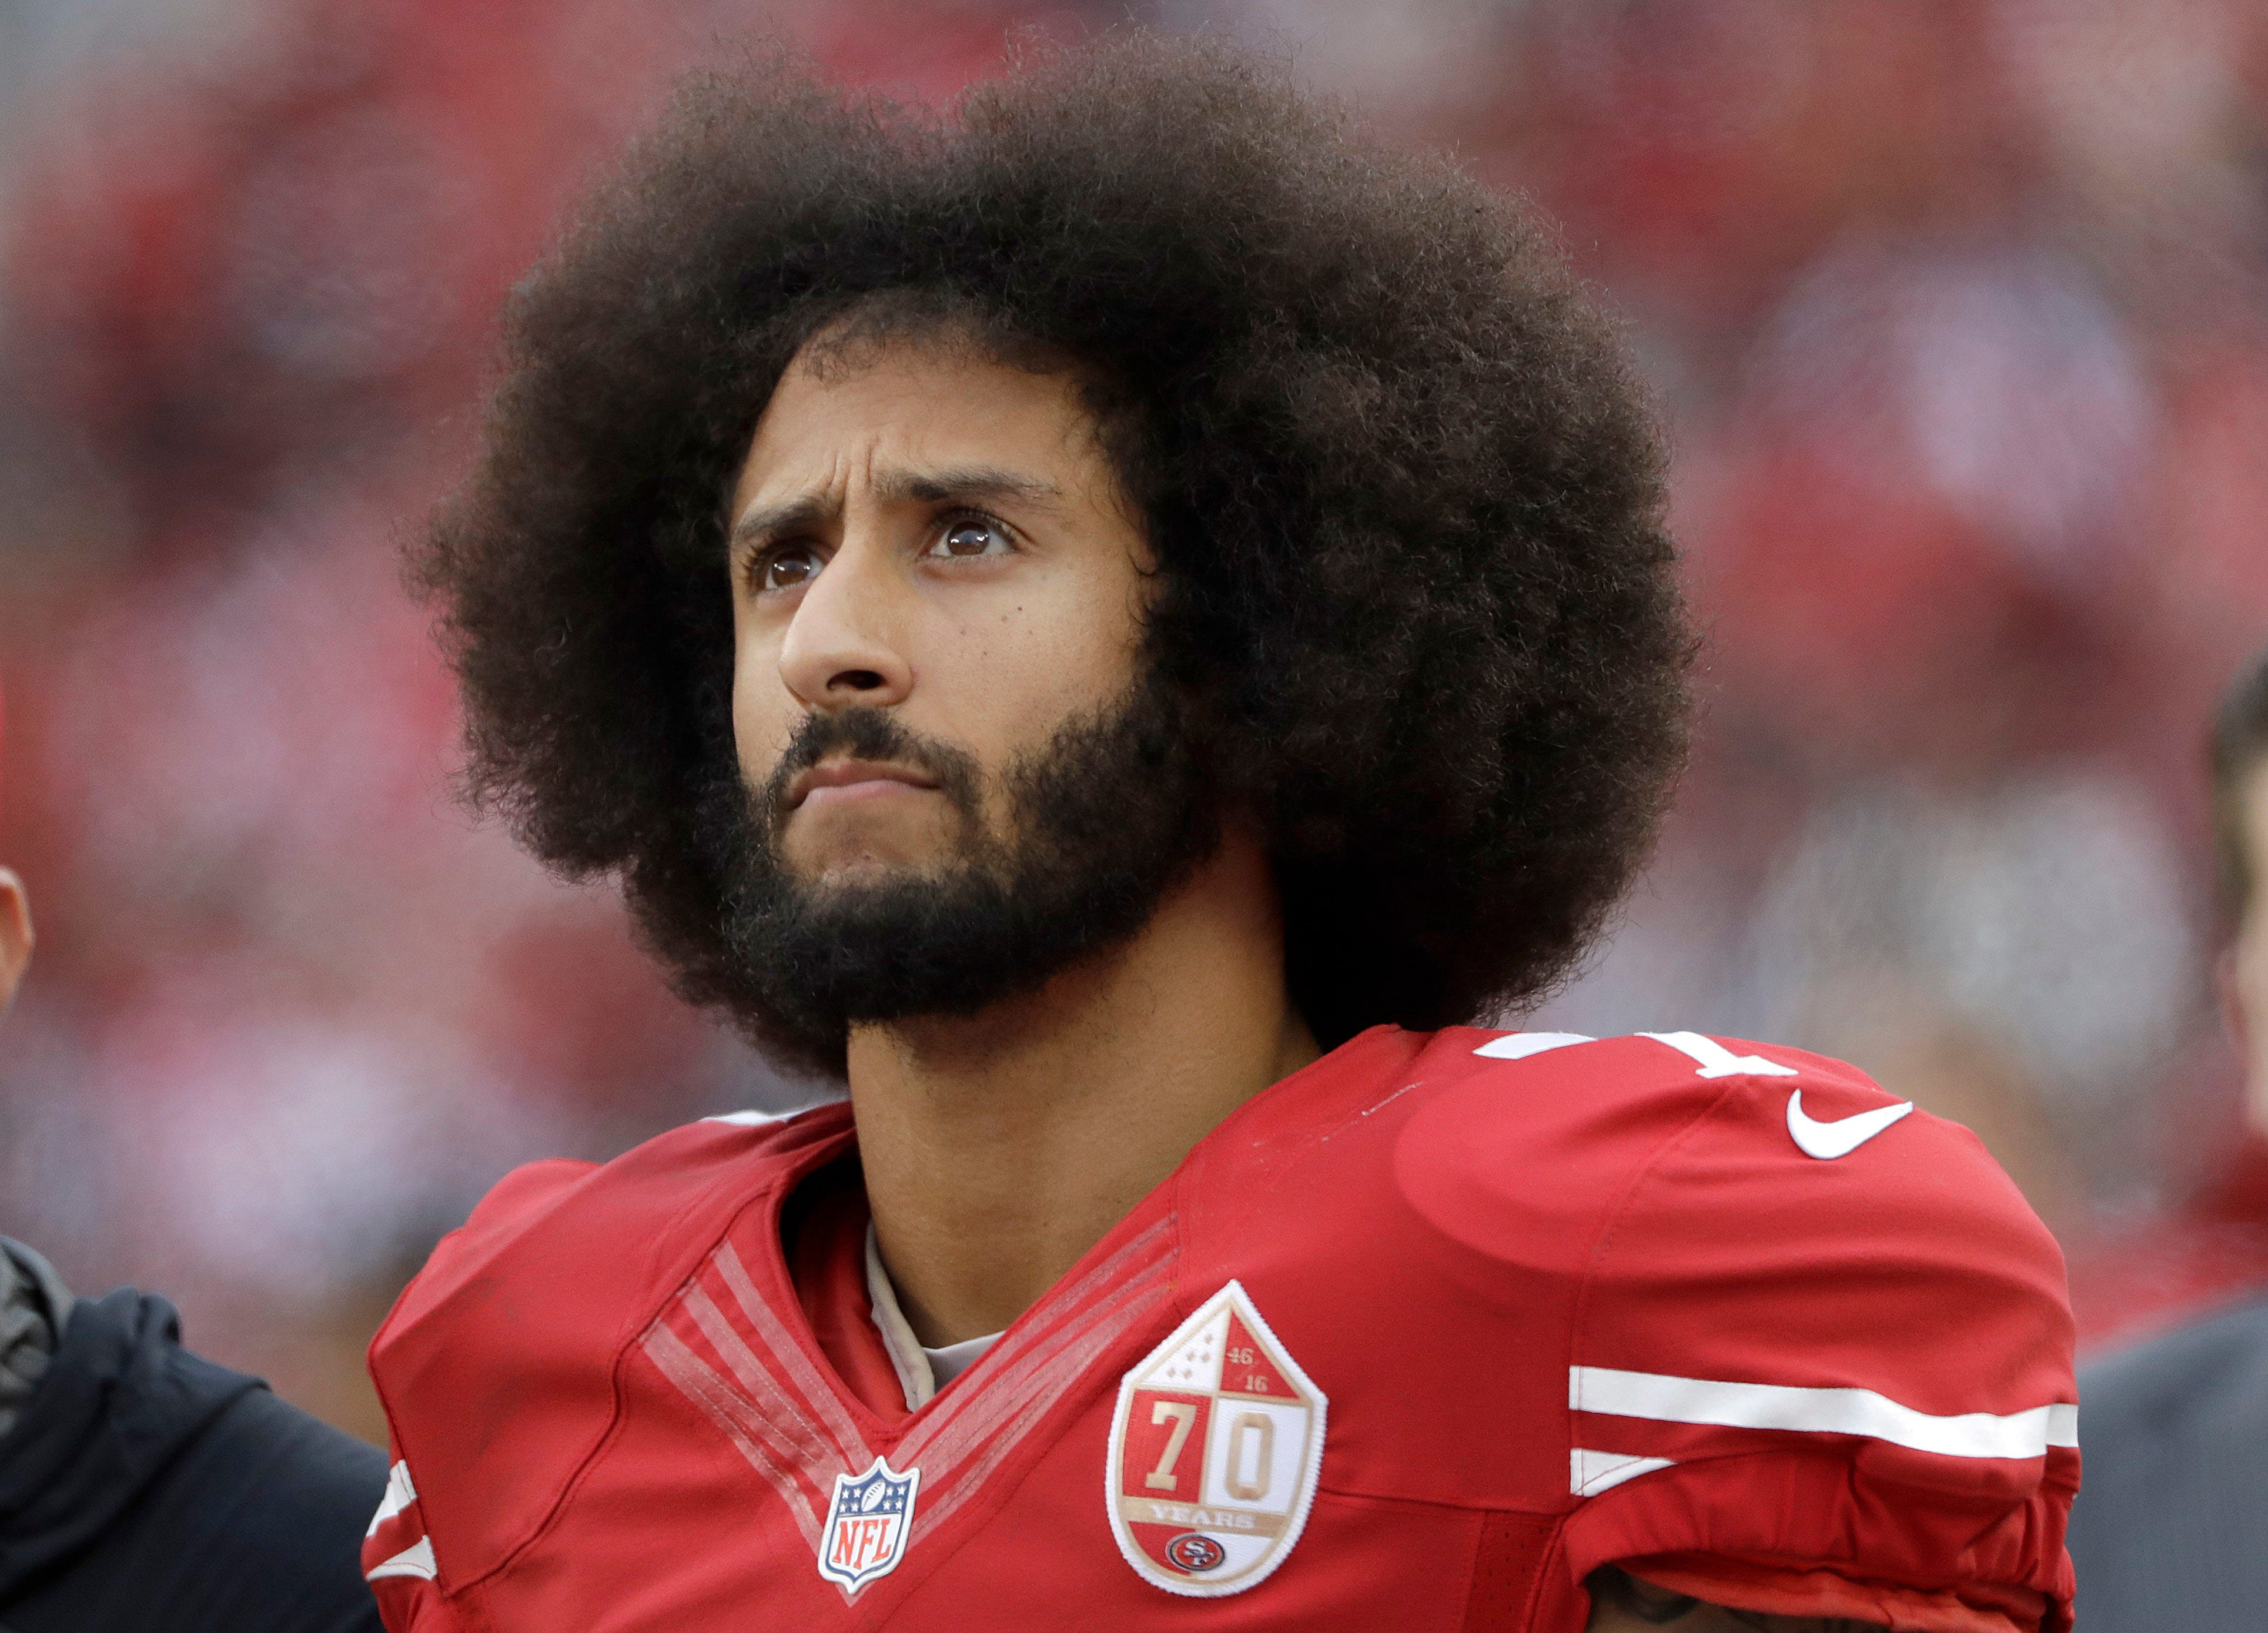 Kaepernick tells CBS he'll stand during national anthem